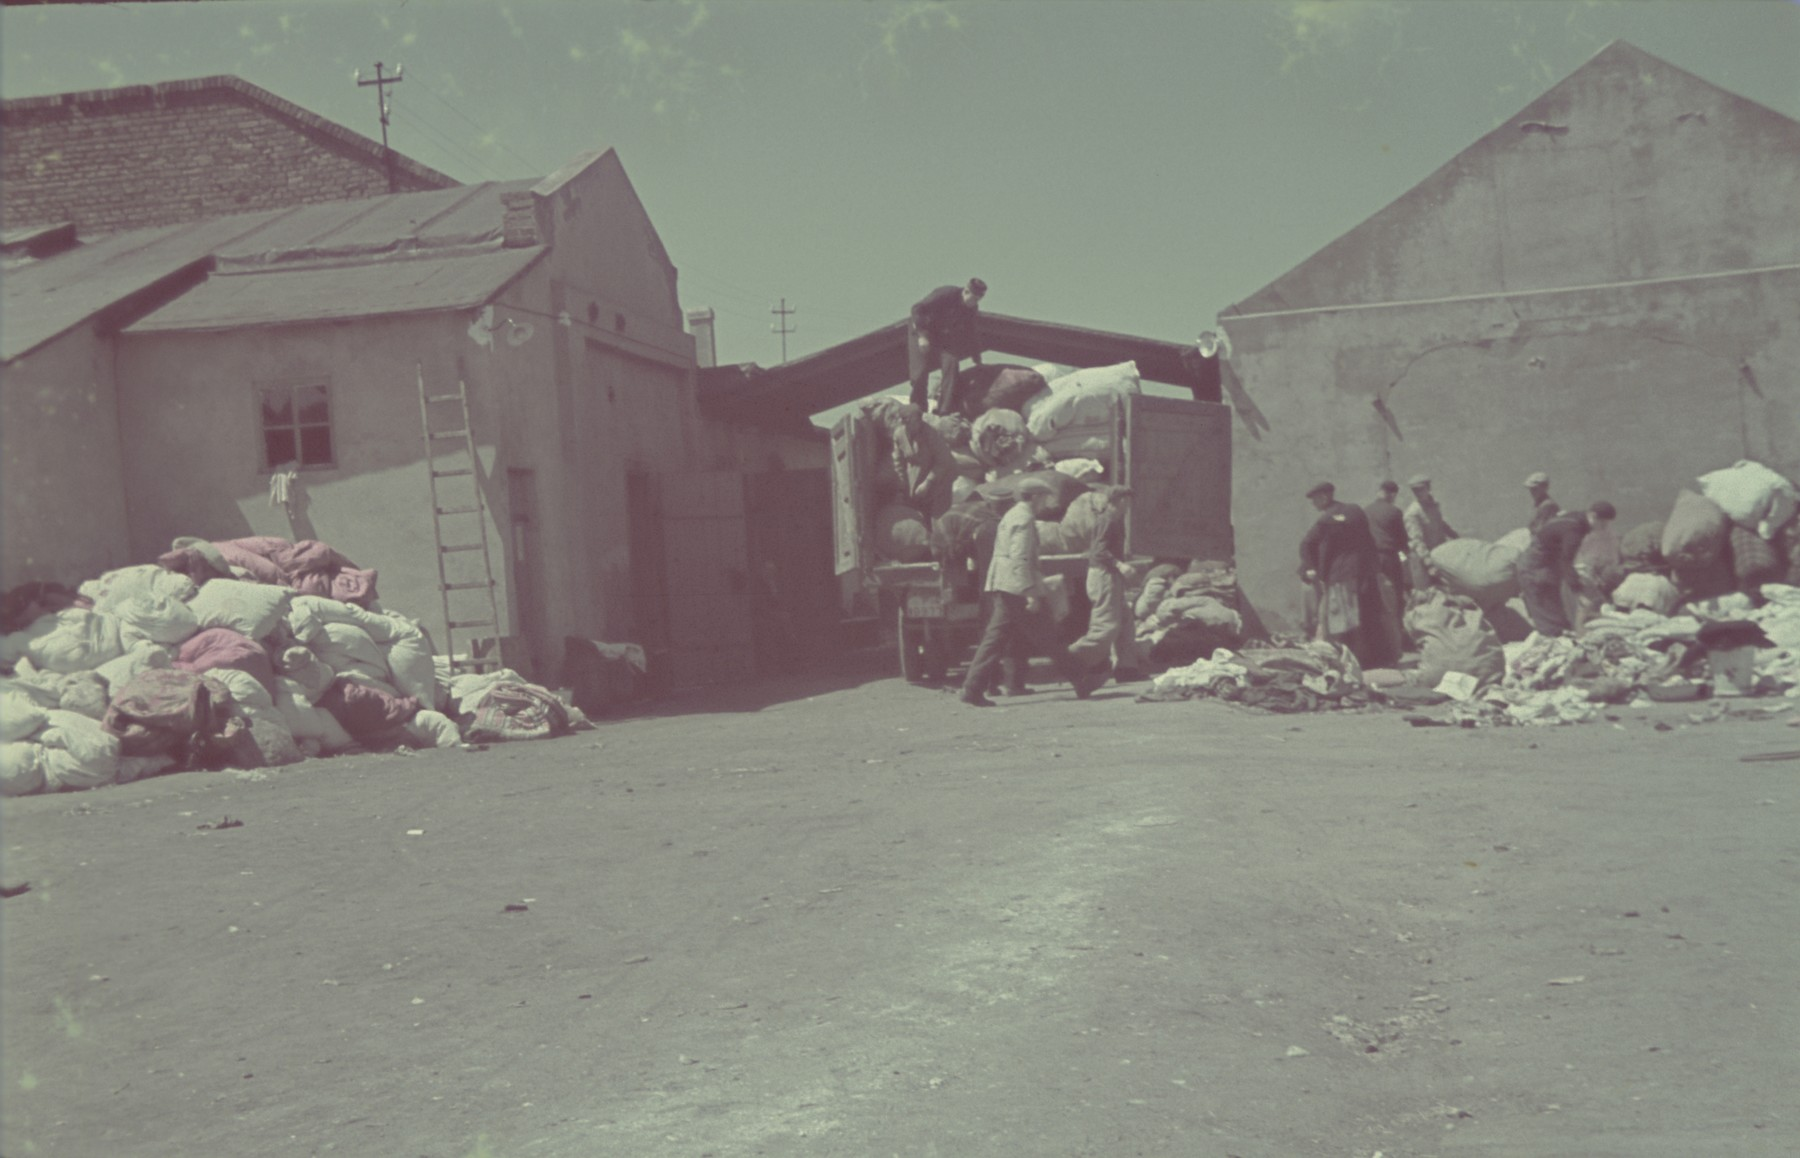 "Jews load bales of confiscated goods onto trucks in the Pabianice labor camp/storage facility.  Original German caption: ""Pabianice, Verladung"" (loading), #34."